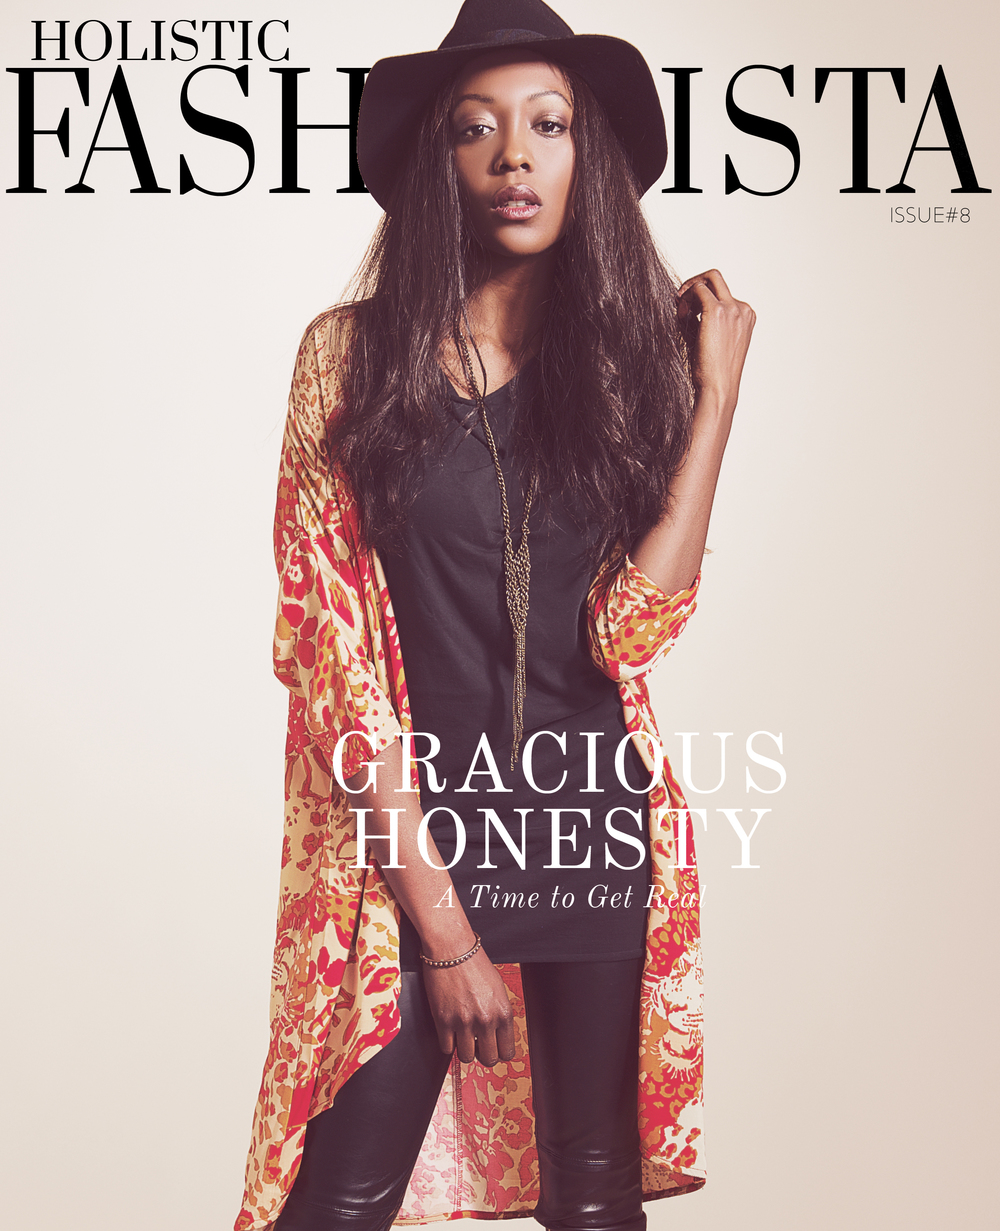 Holistic Fashionista Magazine: Issue #8